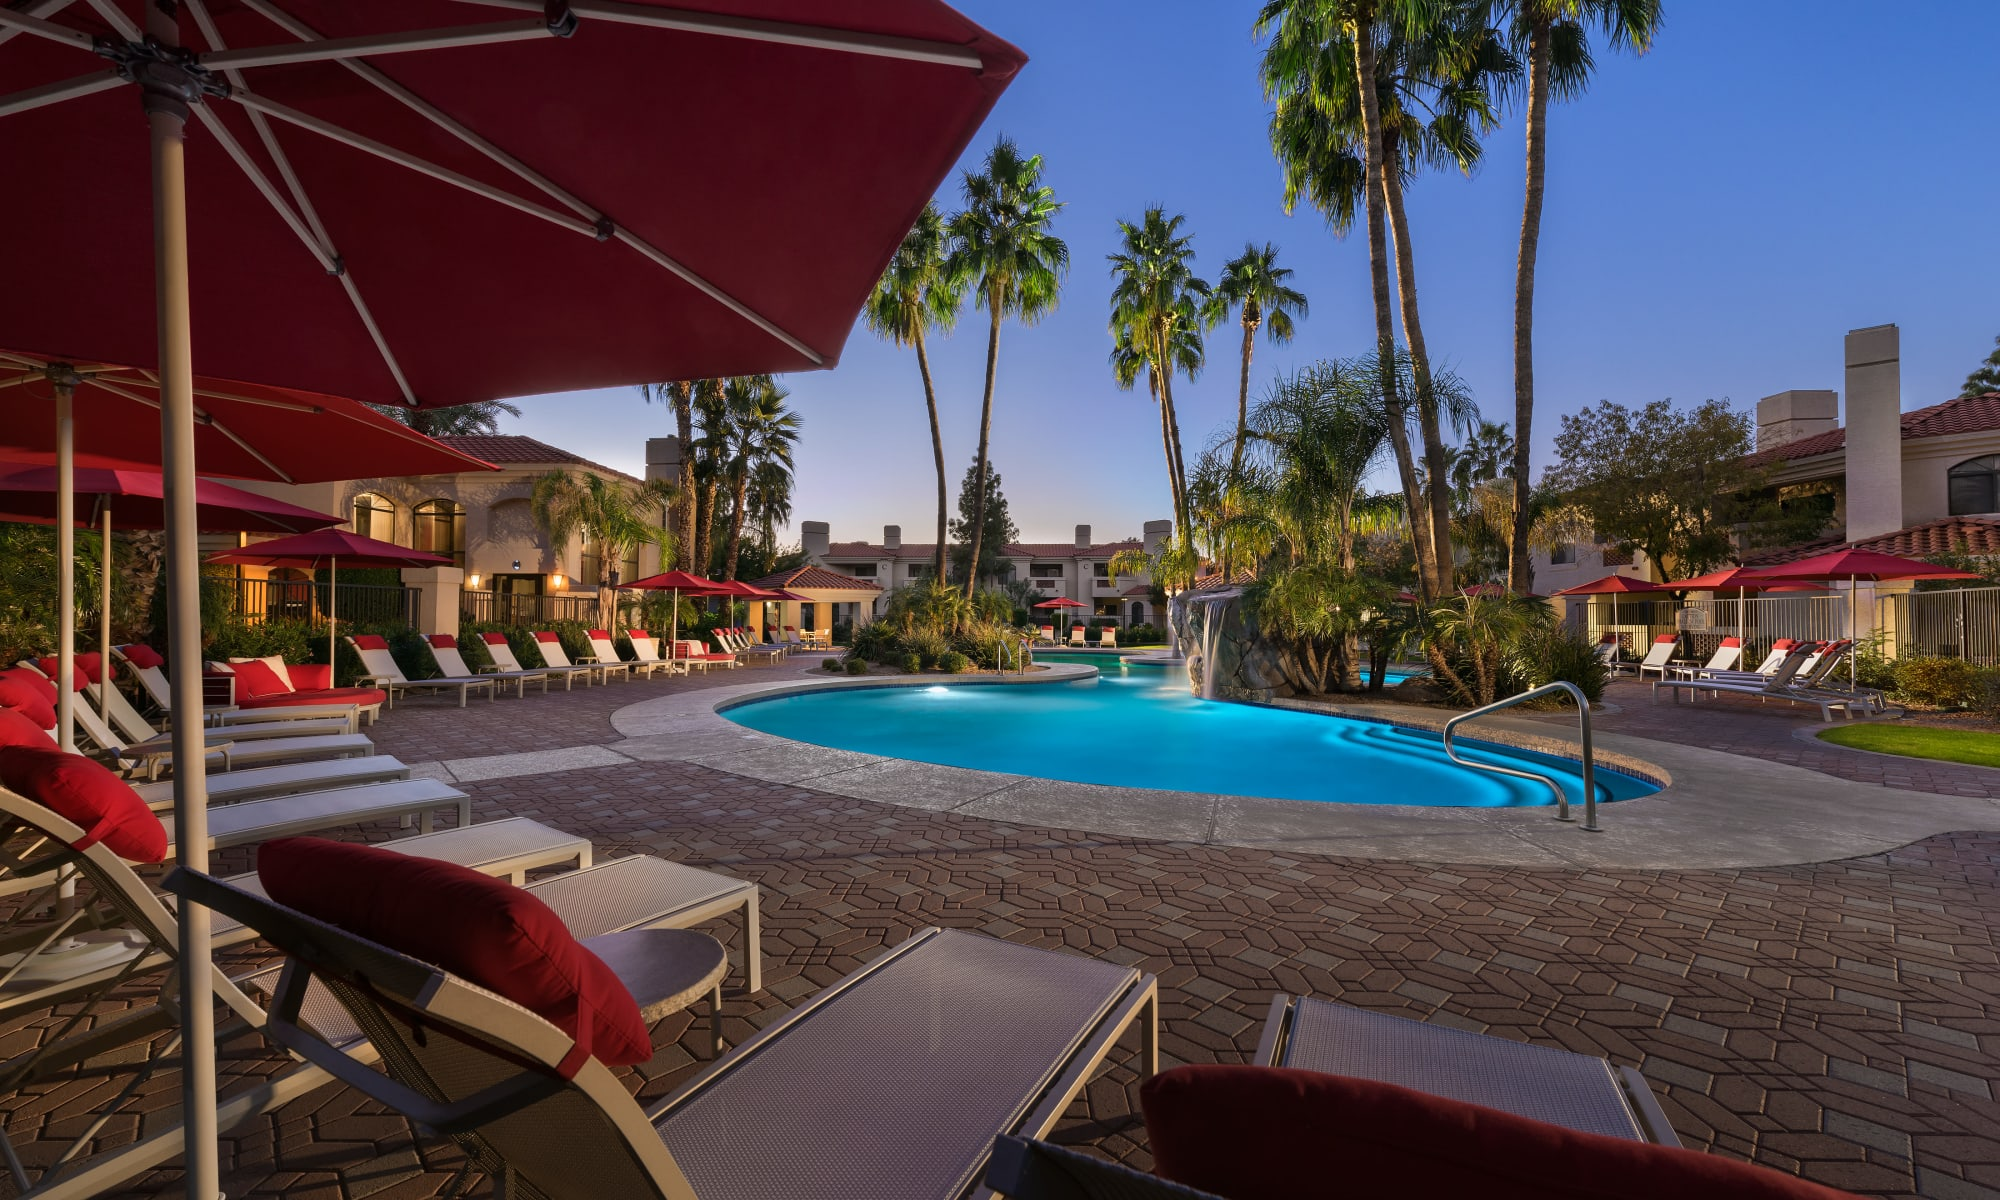 Apartments at San Palmilla in Tempe, Arizona